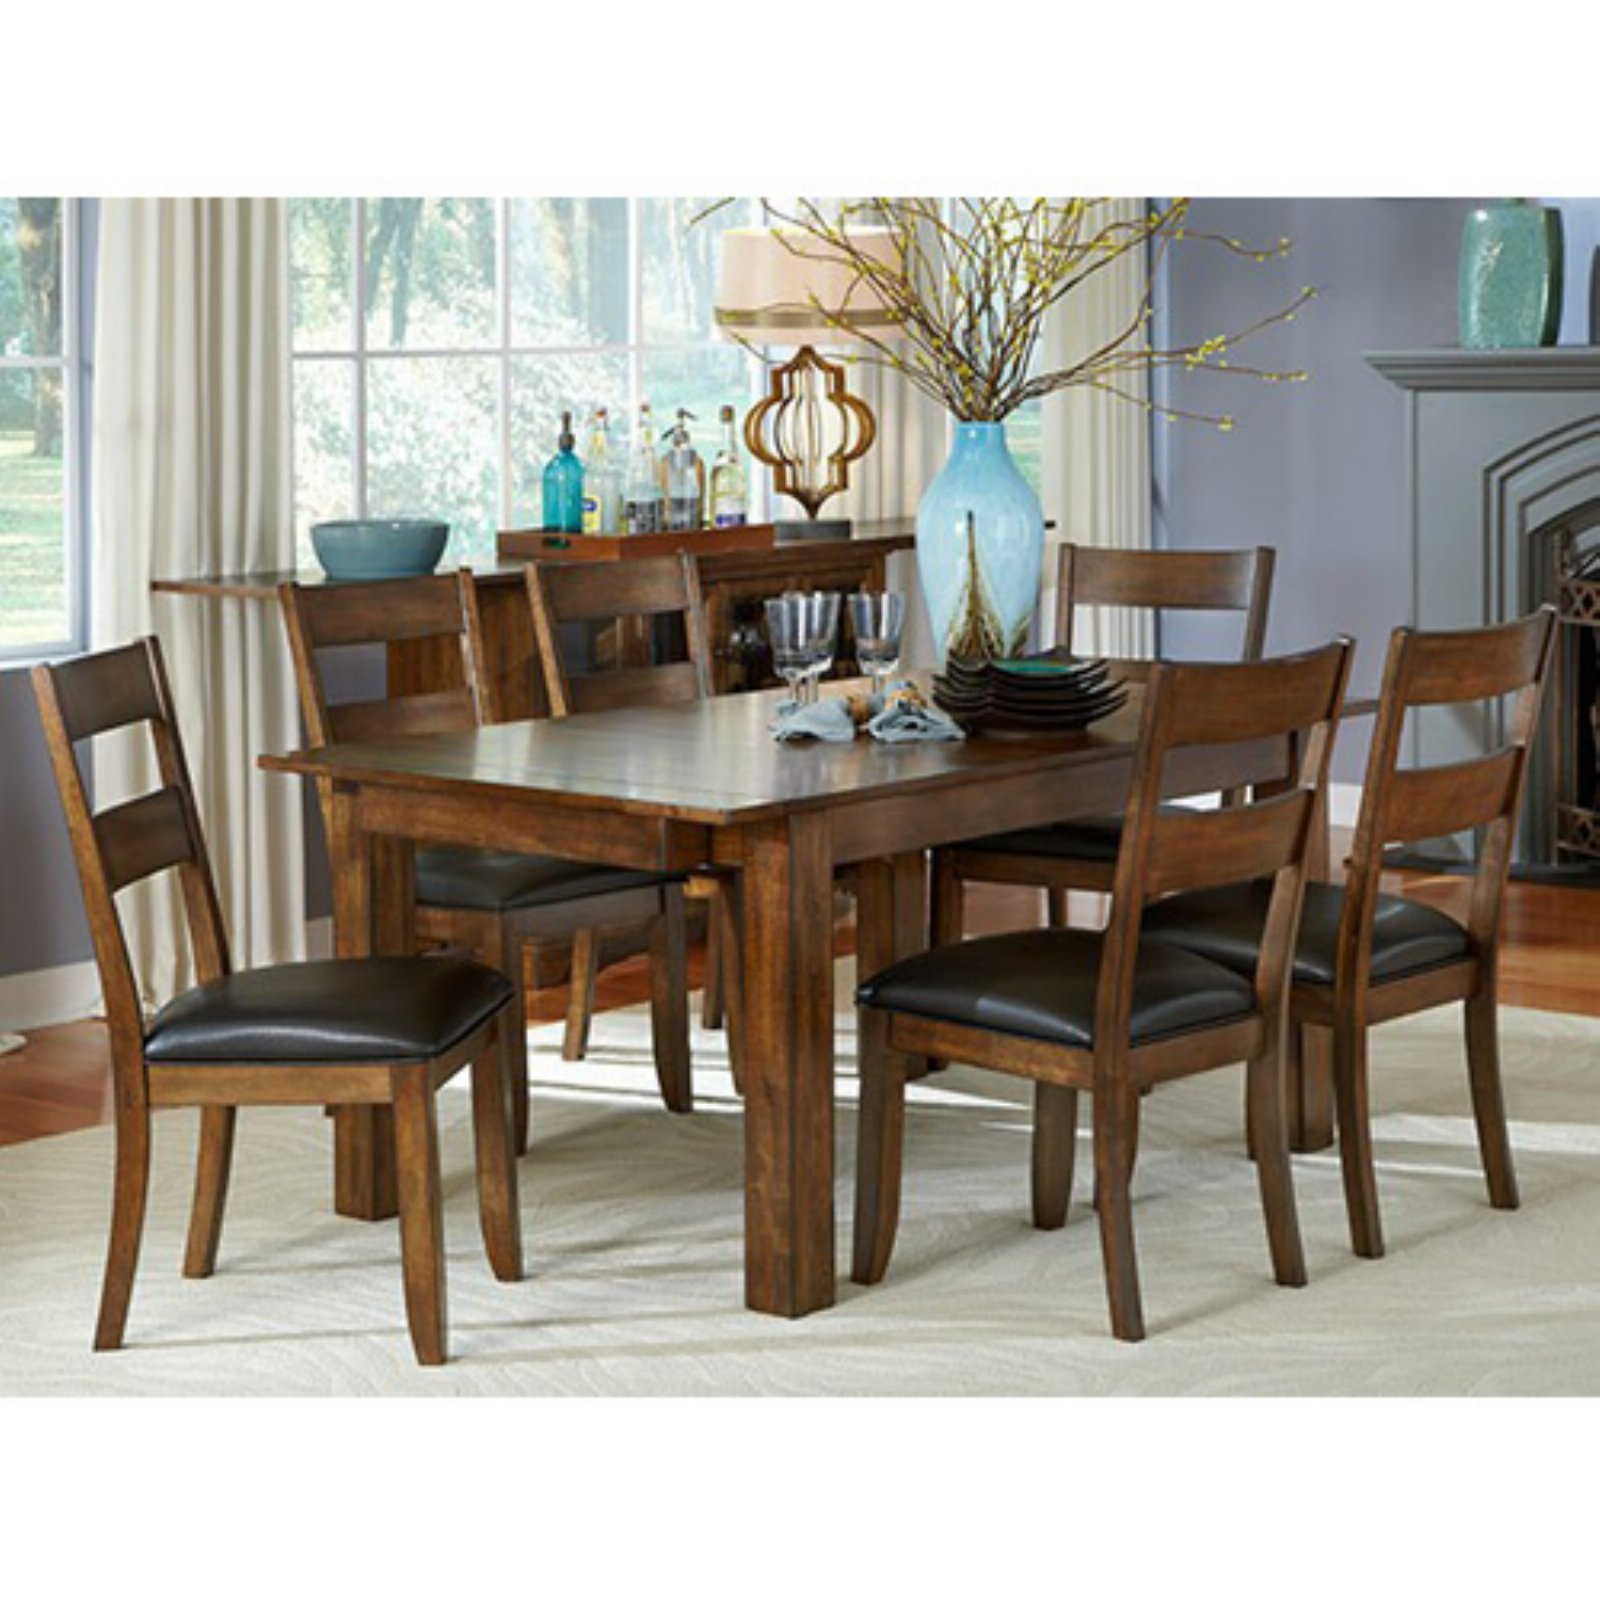 A-America Mariposa Rectangular Leg Dining Table - Rustic Whiskey